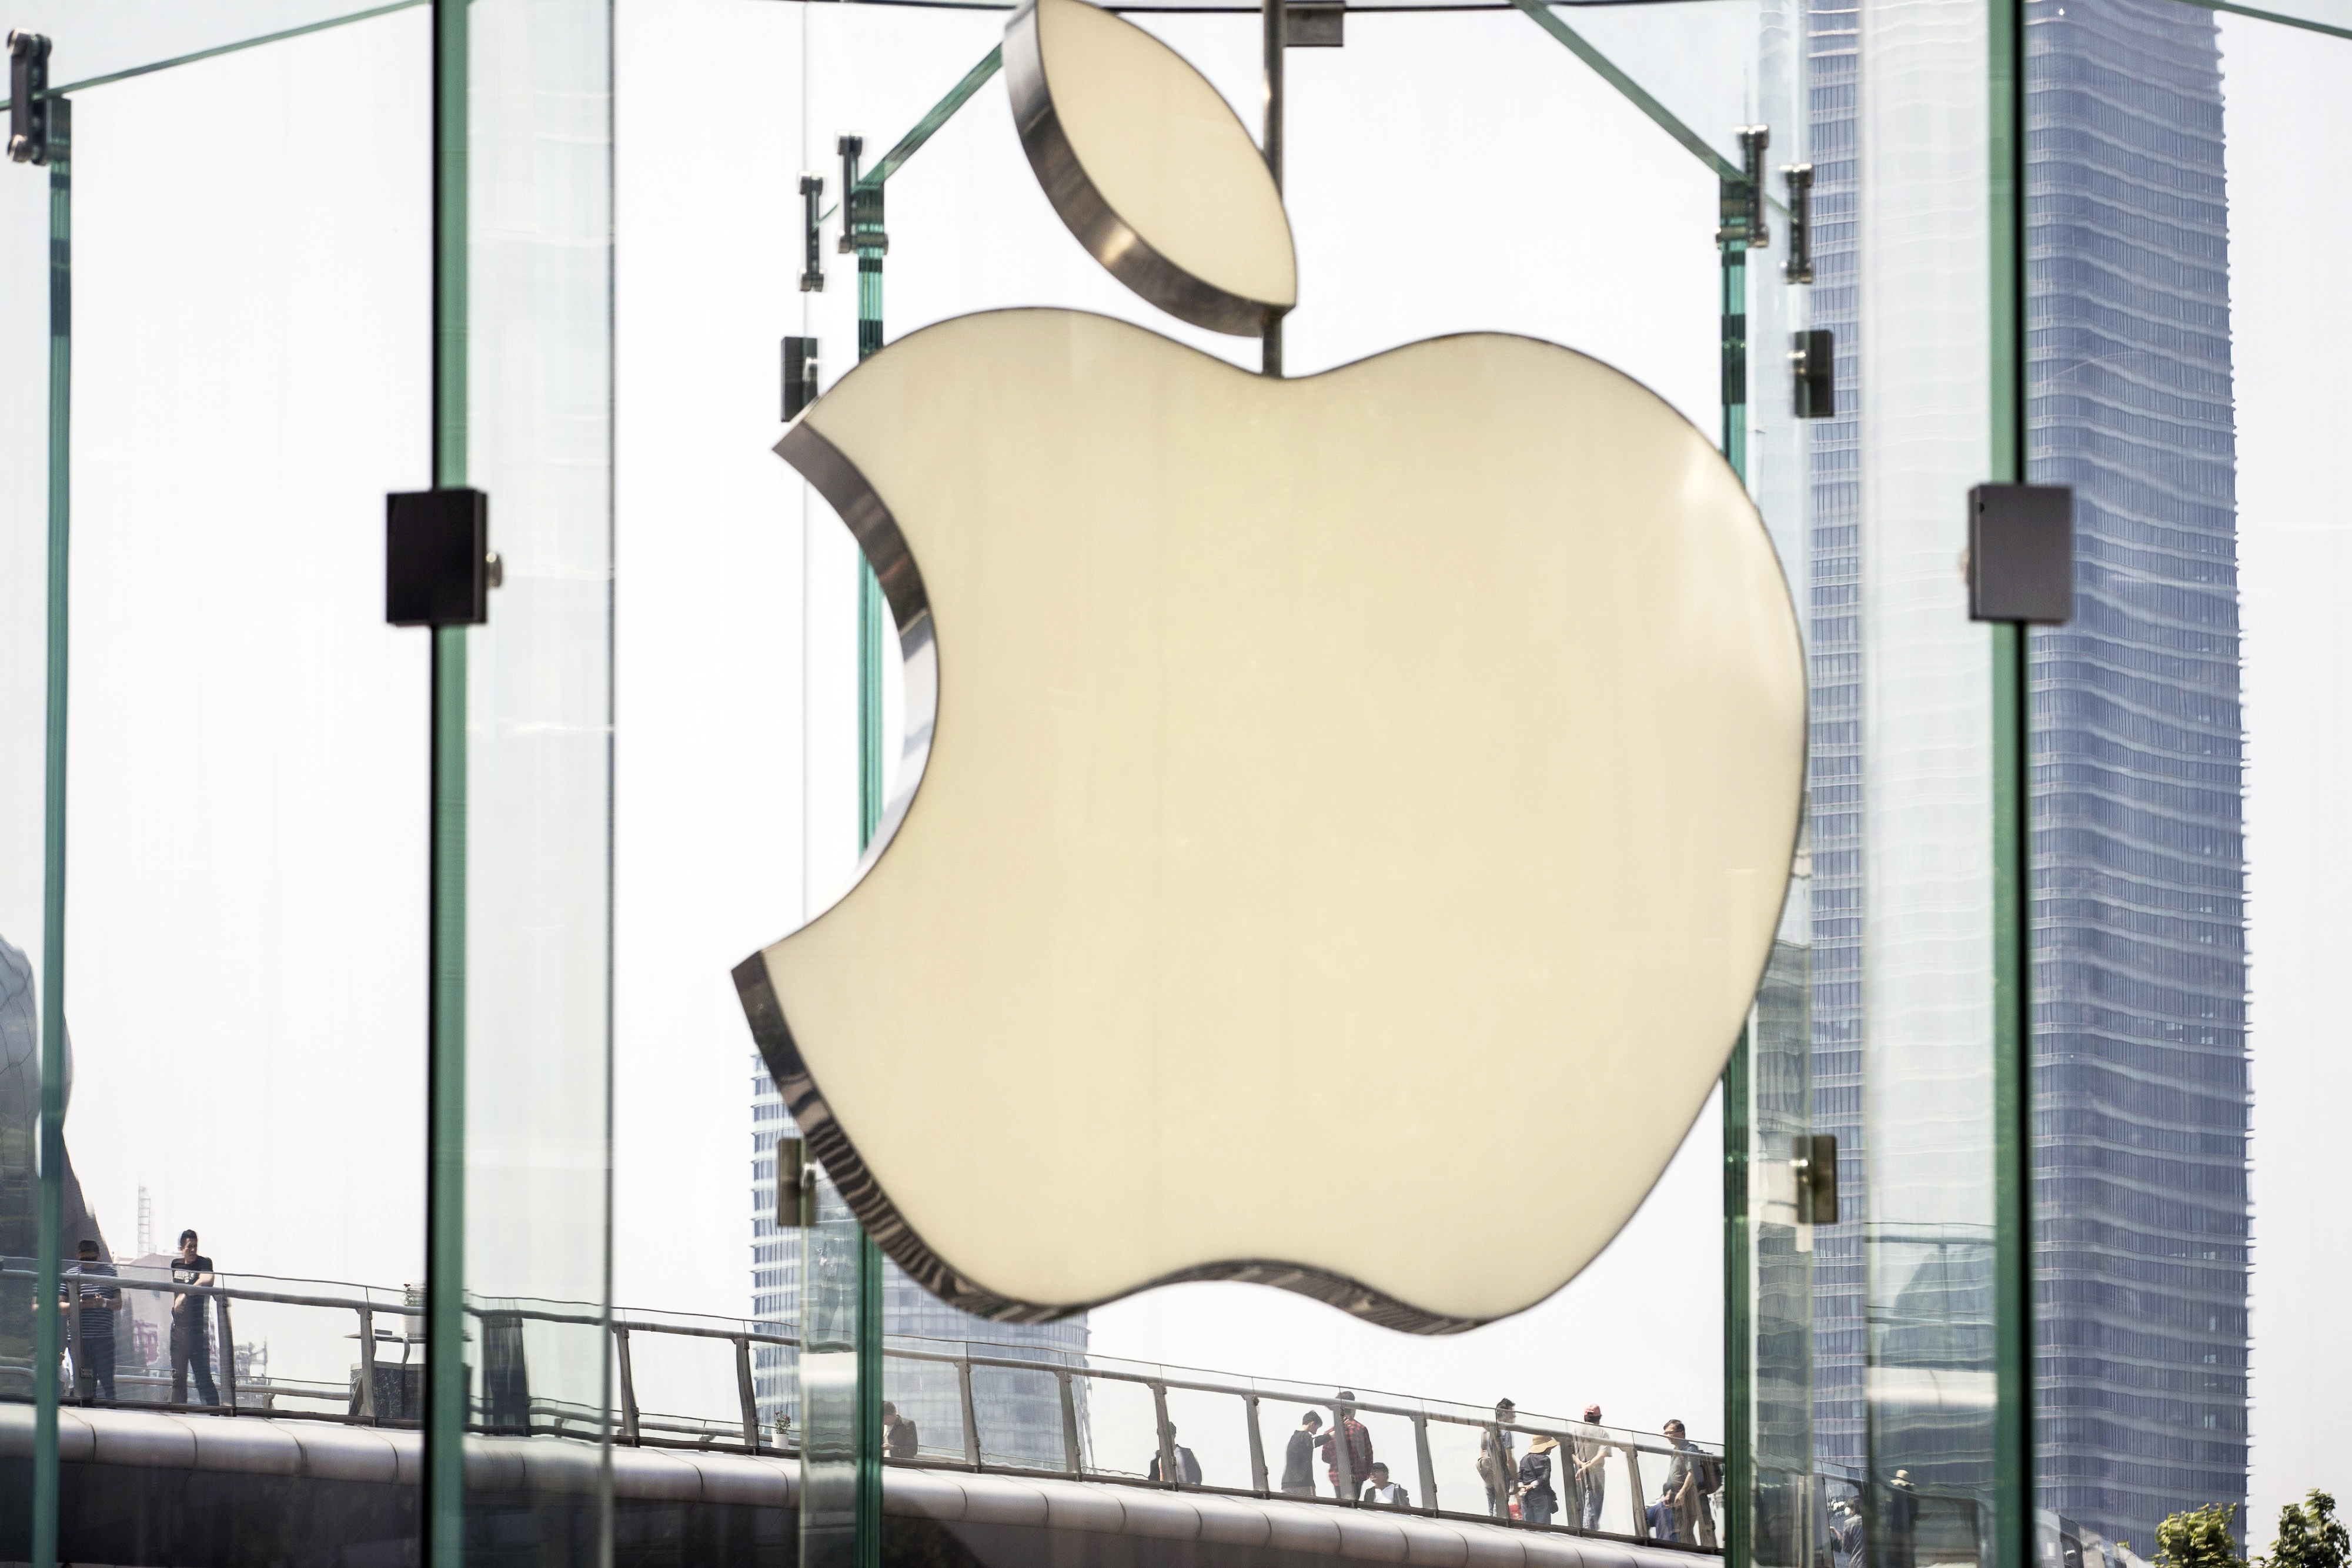 Apple has been accused of using its monopoly control to inflate the prices for apps on its App Store. Photo: Bloomberg